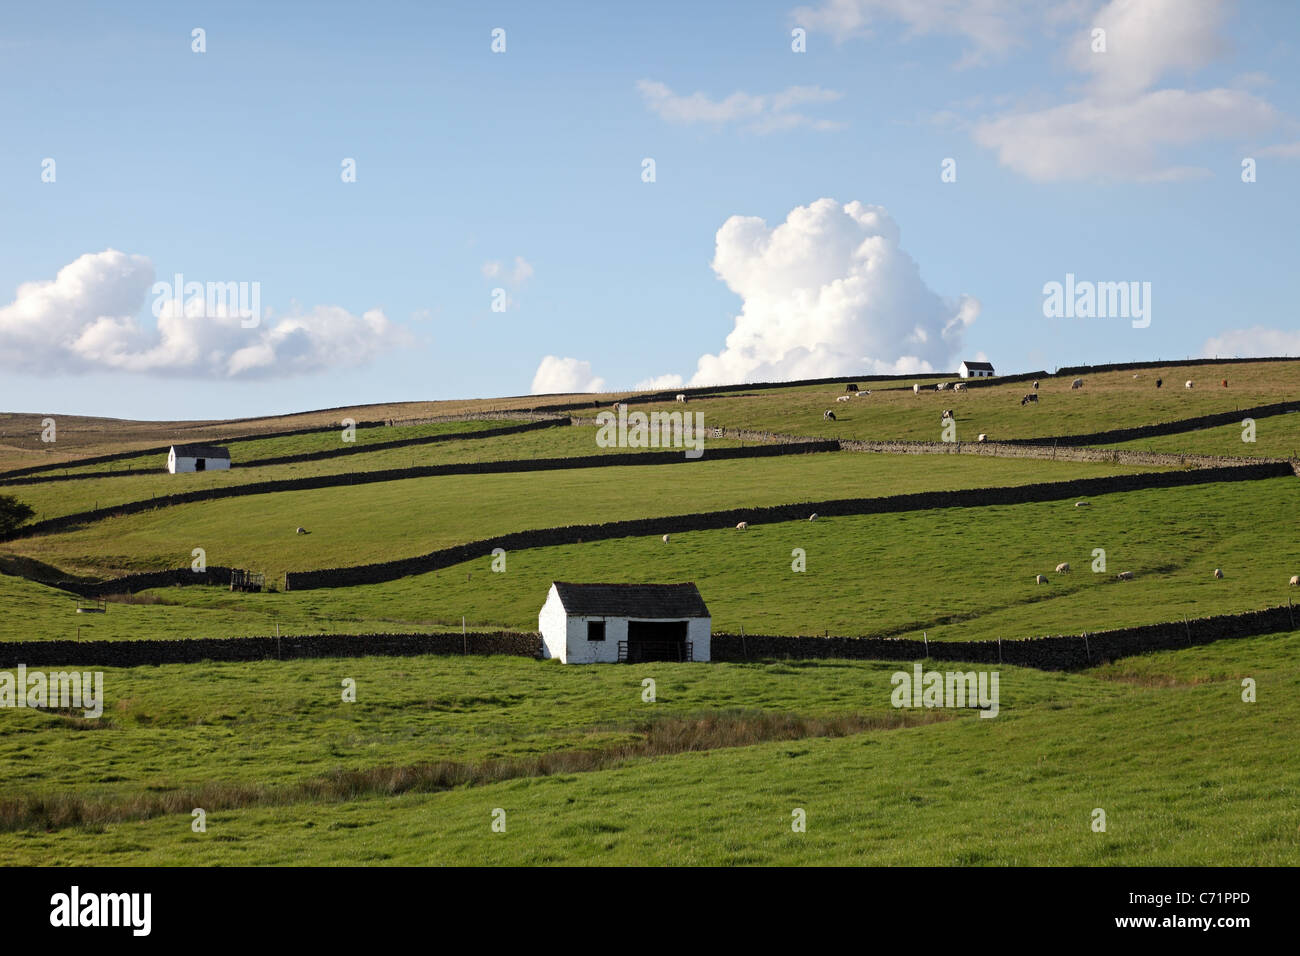 Farmland with White Barns Near Bowlees Upper Teesdale County Durham Northern England UK - Stock Image